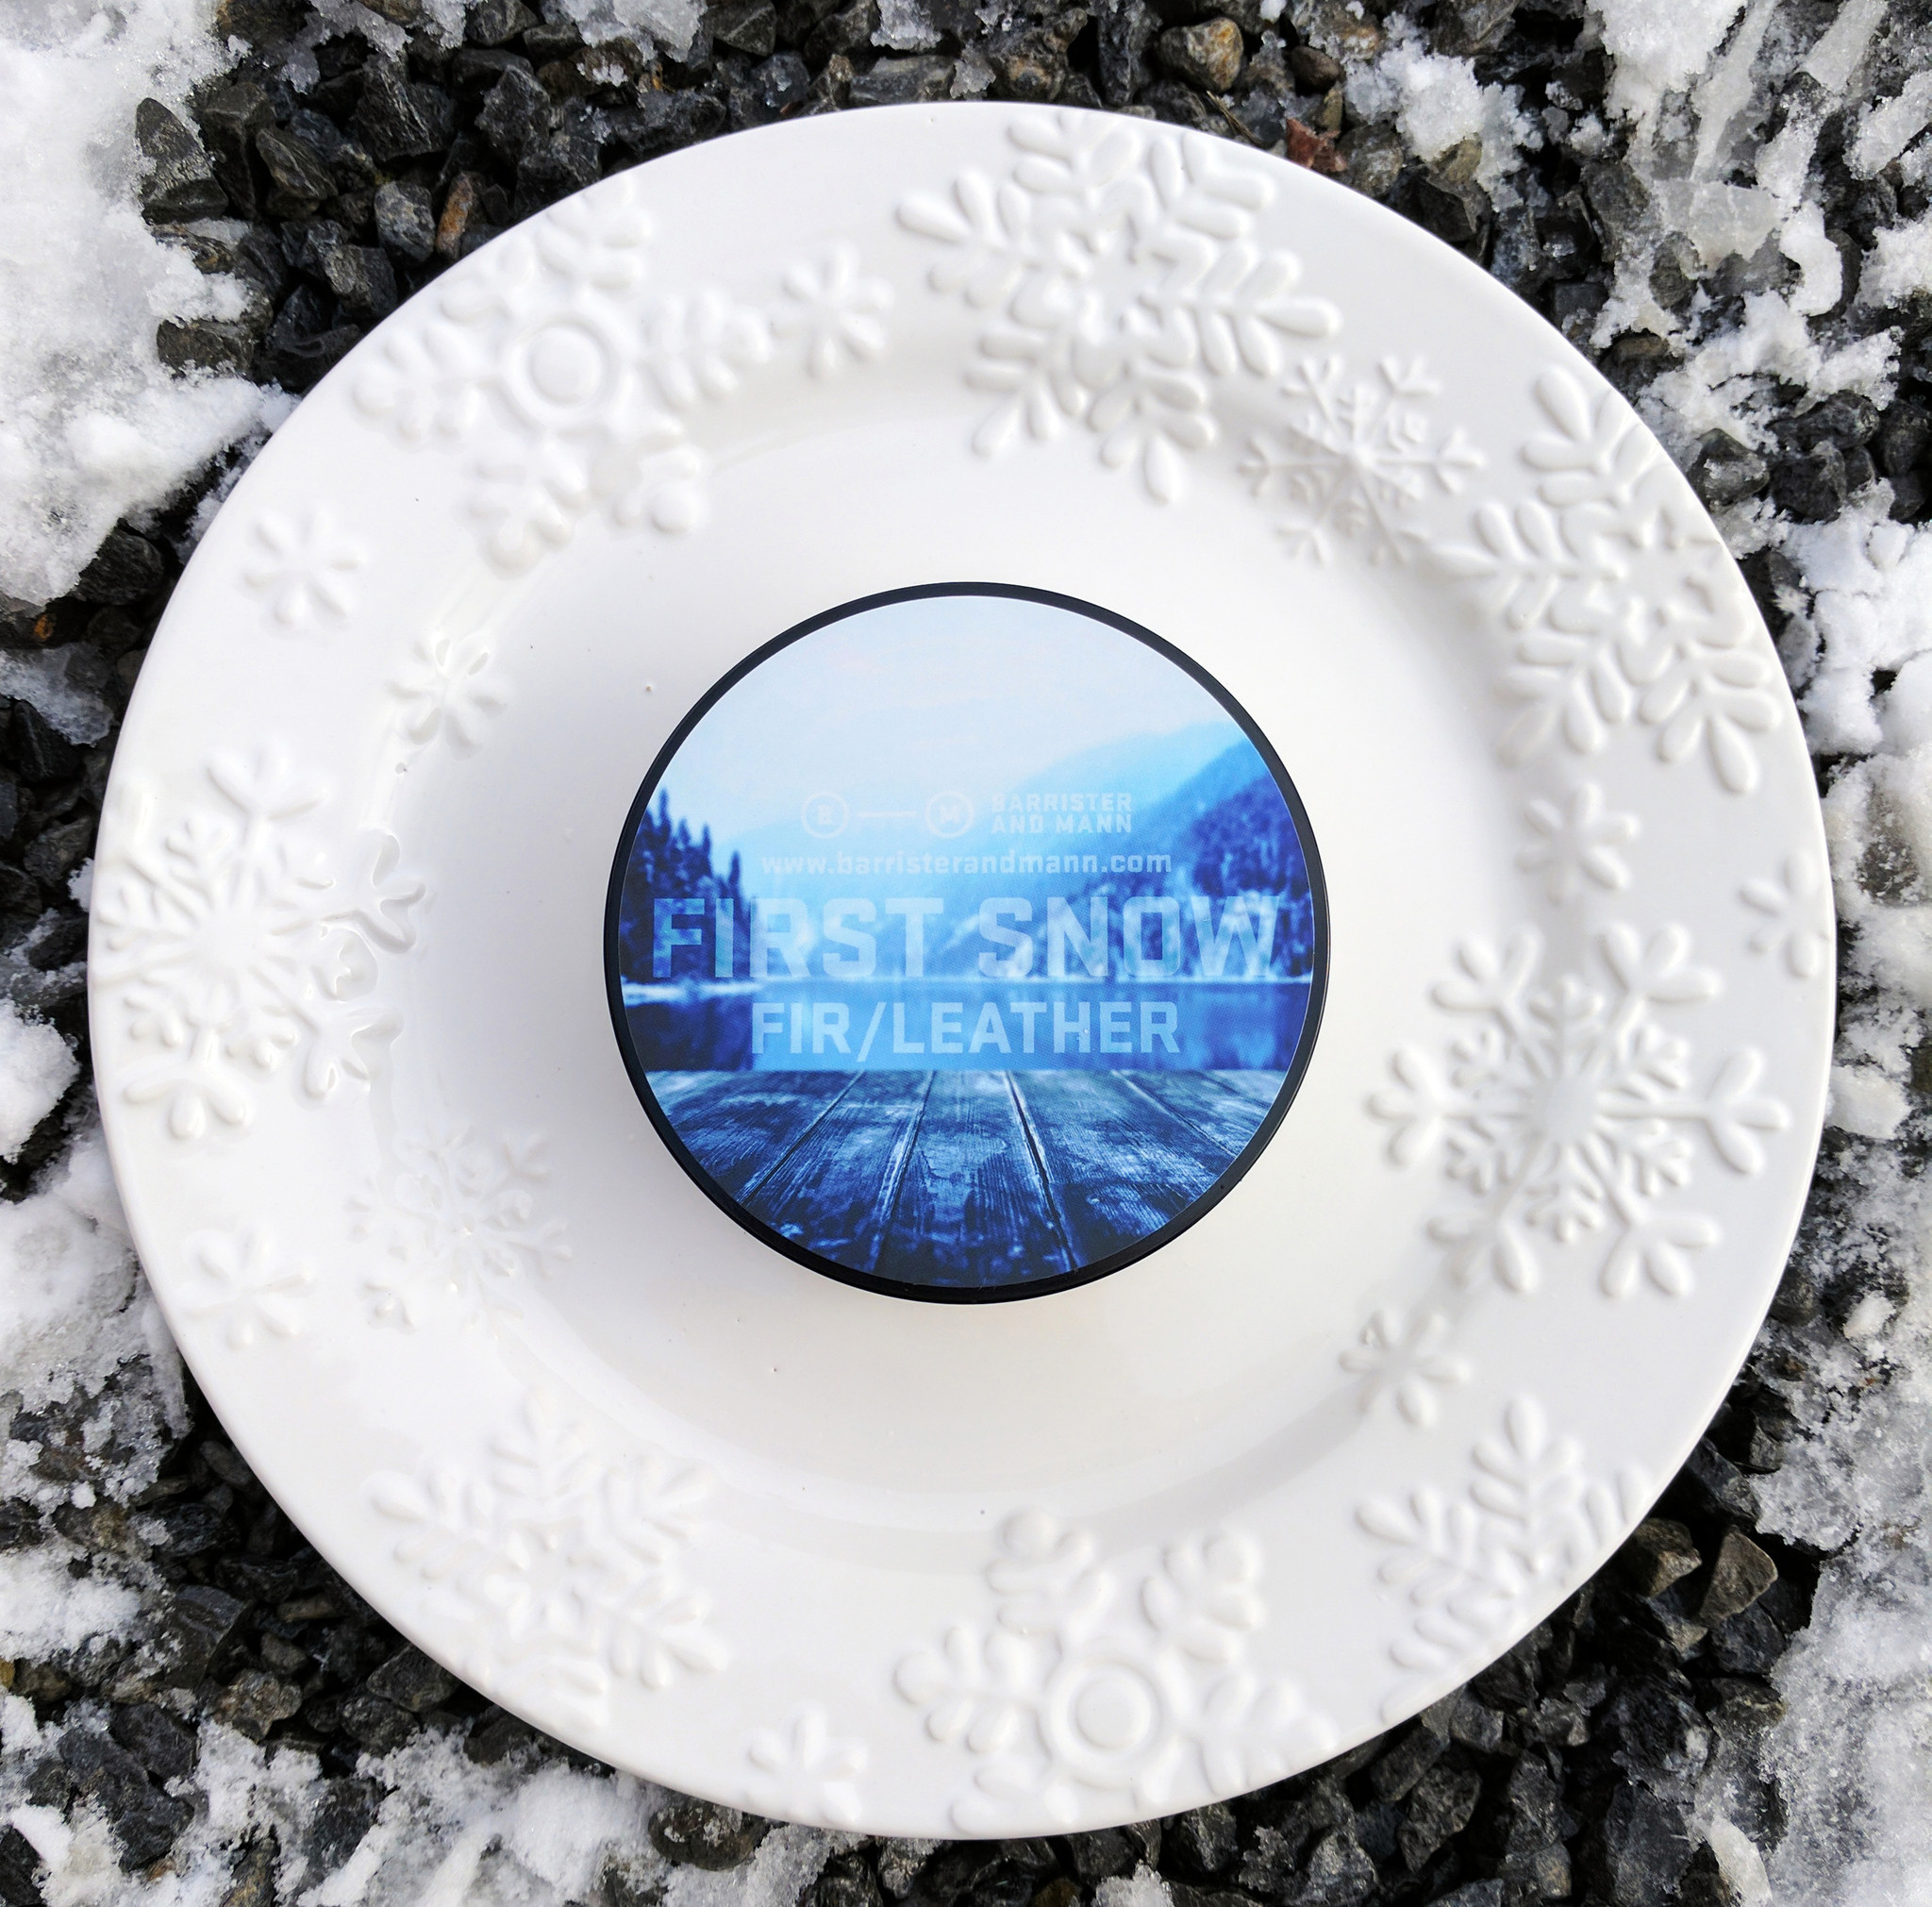 Barrister and Mann - First Snow - Soap image